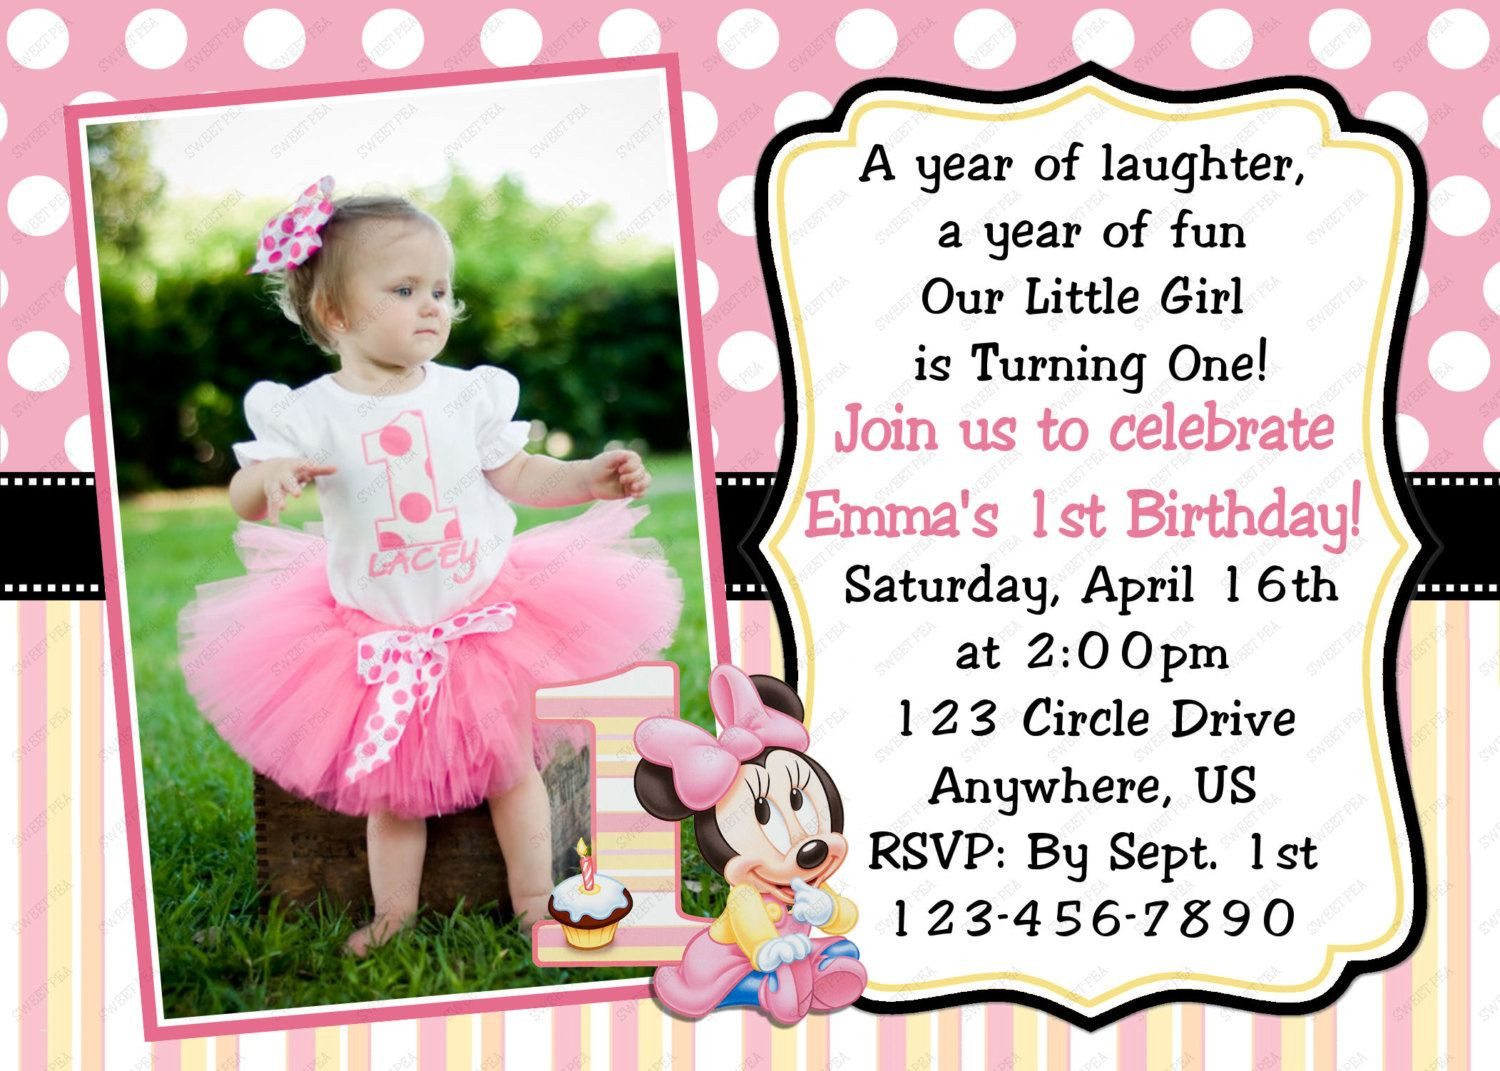 baby first birthday invitation templates free ; 1st-birthday-invitations-templates-free-best-of-minnie-mouse-baby-1st-first-birthday-invitation-or-thank-you-card-of-1st-birthday-invitations-templates-free